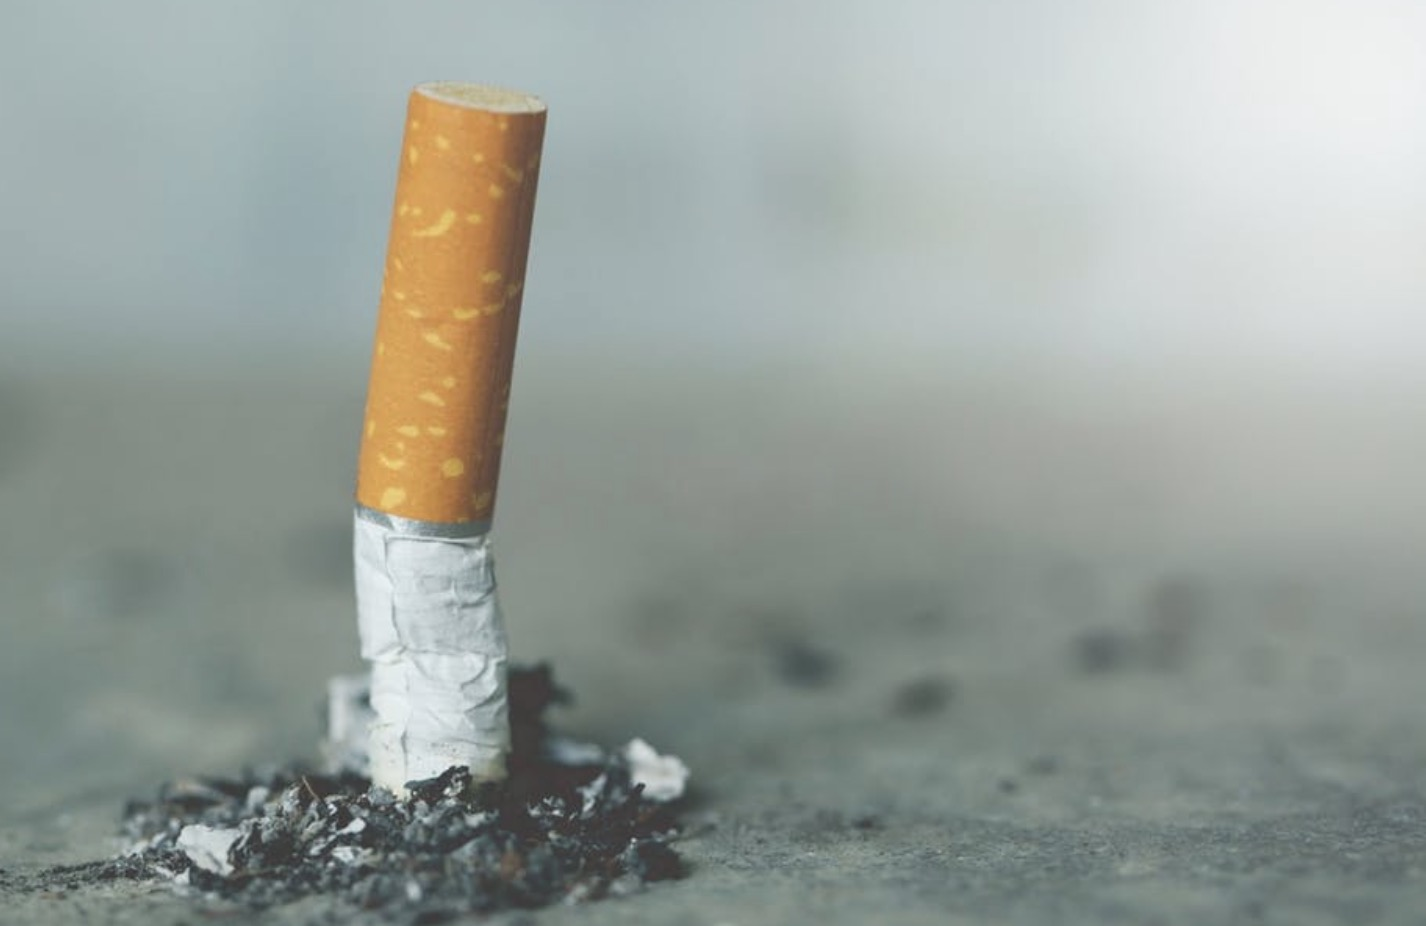 FL Senate passes 21 and over smoking age bill